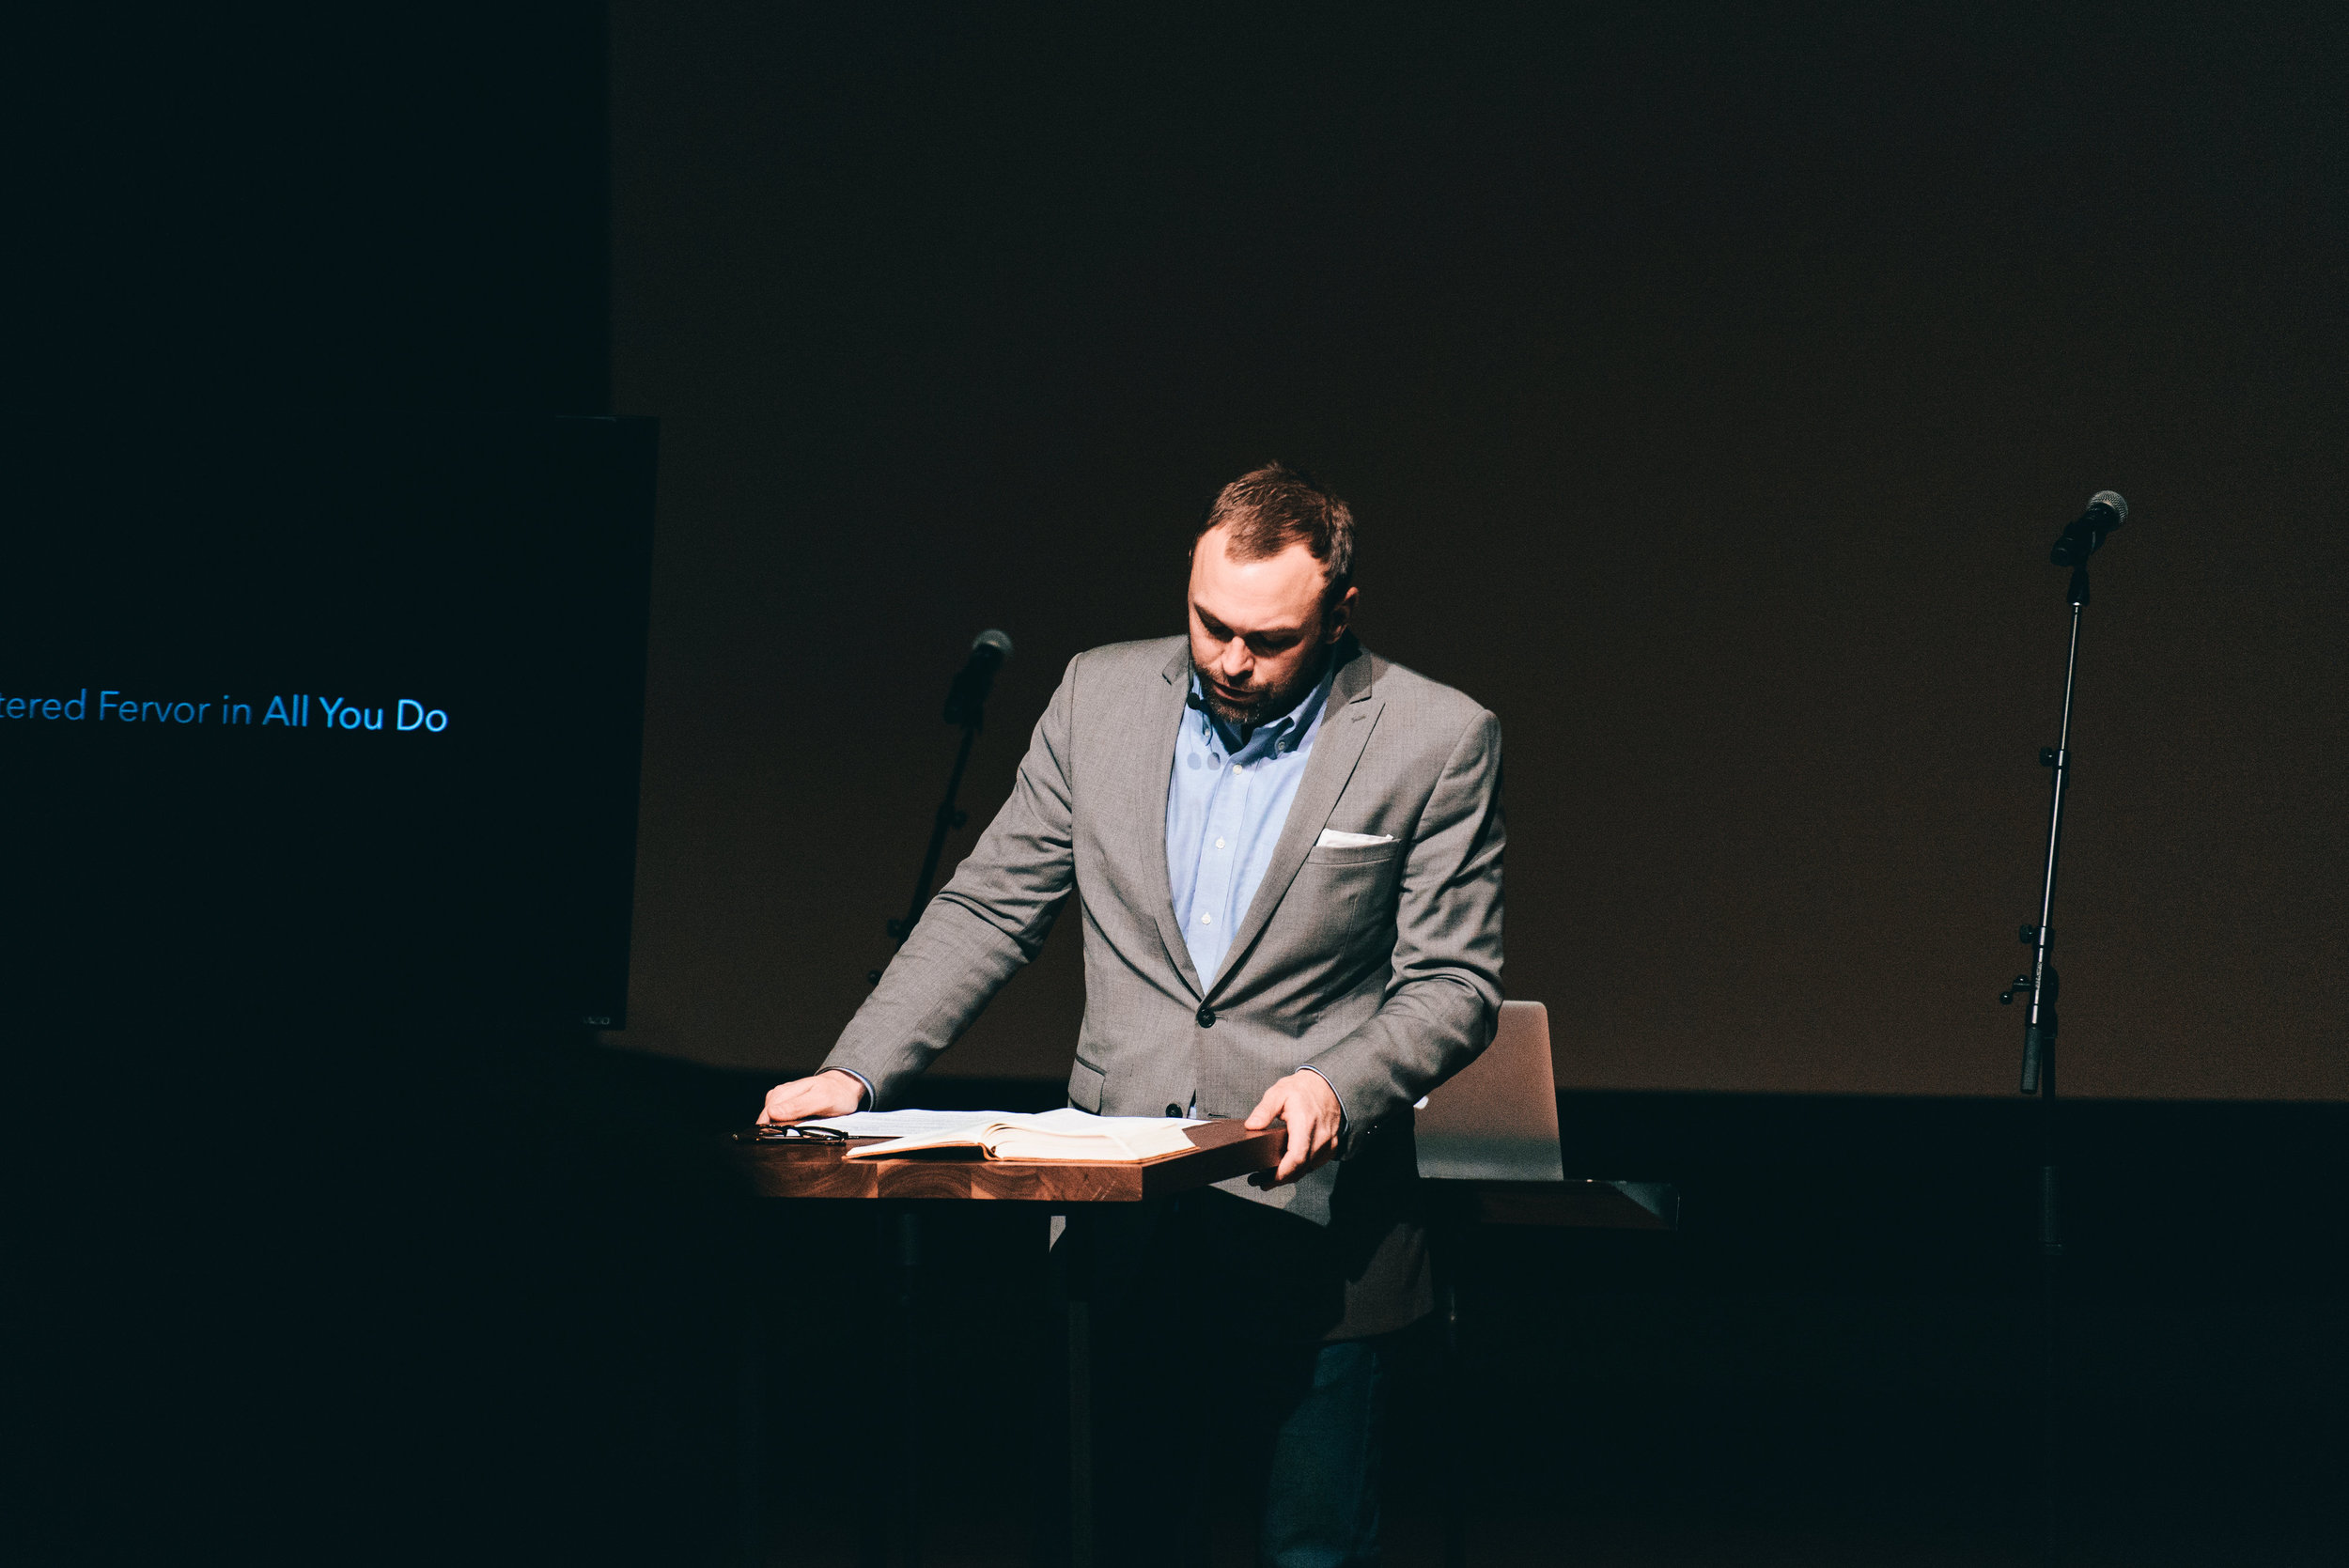 Gospel - We believe that the gospel changes everything and so, in everything we do, we want the gospel to be central. We want to be a church of gospel clarity in a world of competing worldviews. We also want to train our people to be gospel fluent, equipped to take the power of the gospel with them wherever they go.